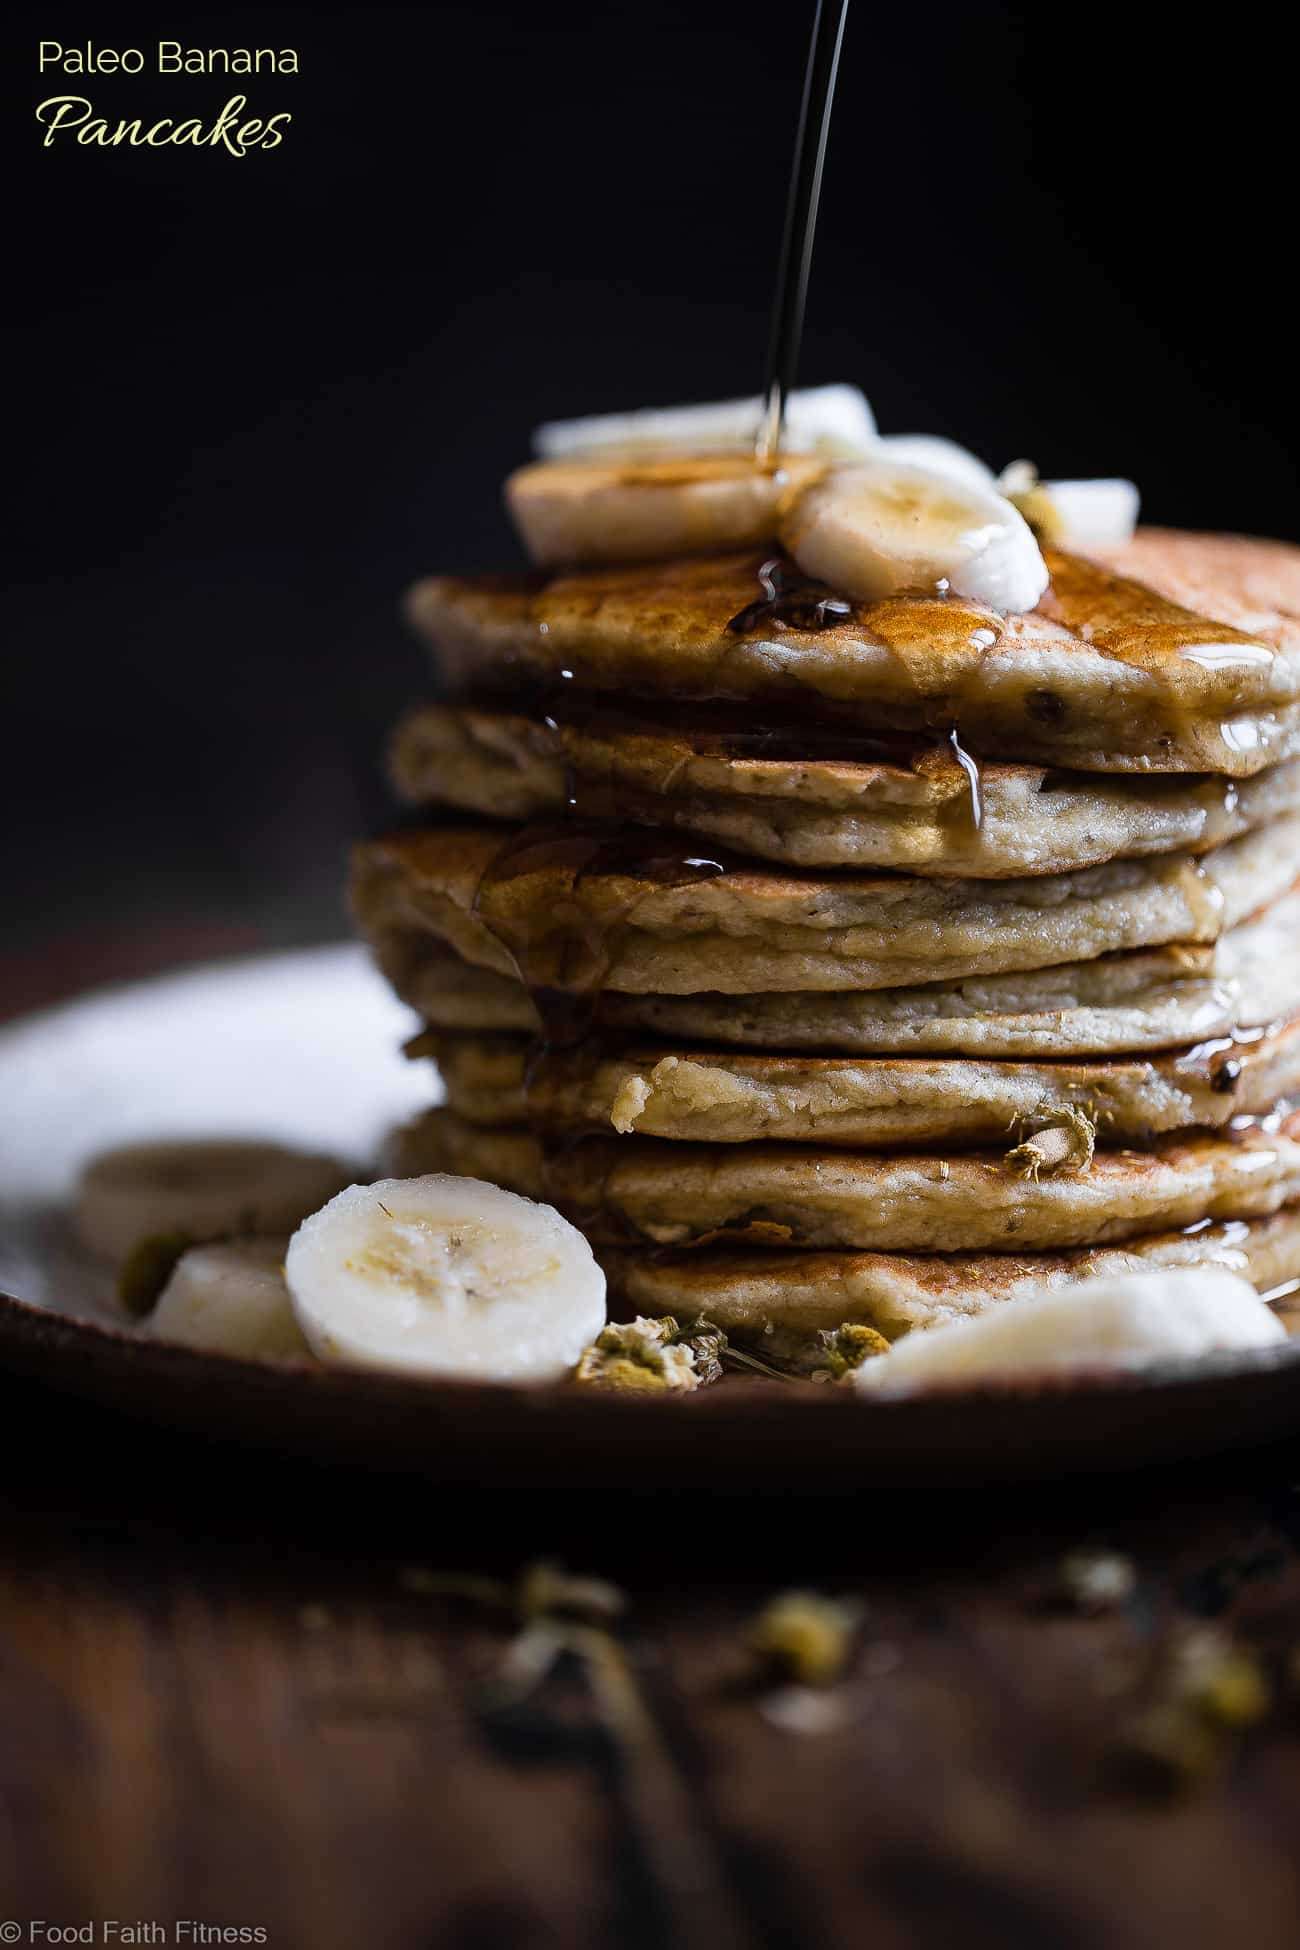 Easy Paleo Banana Pancakes with Coconut Flour - These quick and easy banana pancakes are naturally sweetened, gluten, grain and dairy free and SO light and fluffy! The perfect healthy start to your day or weekend breakfast! | Foodfaithfitness.com | #Foodfaithfitness | #Paleo #Glutenfree #Pancakes #Grainfree